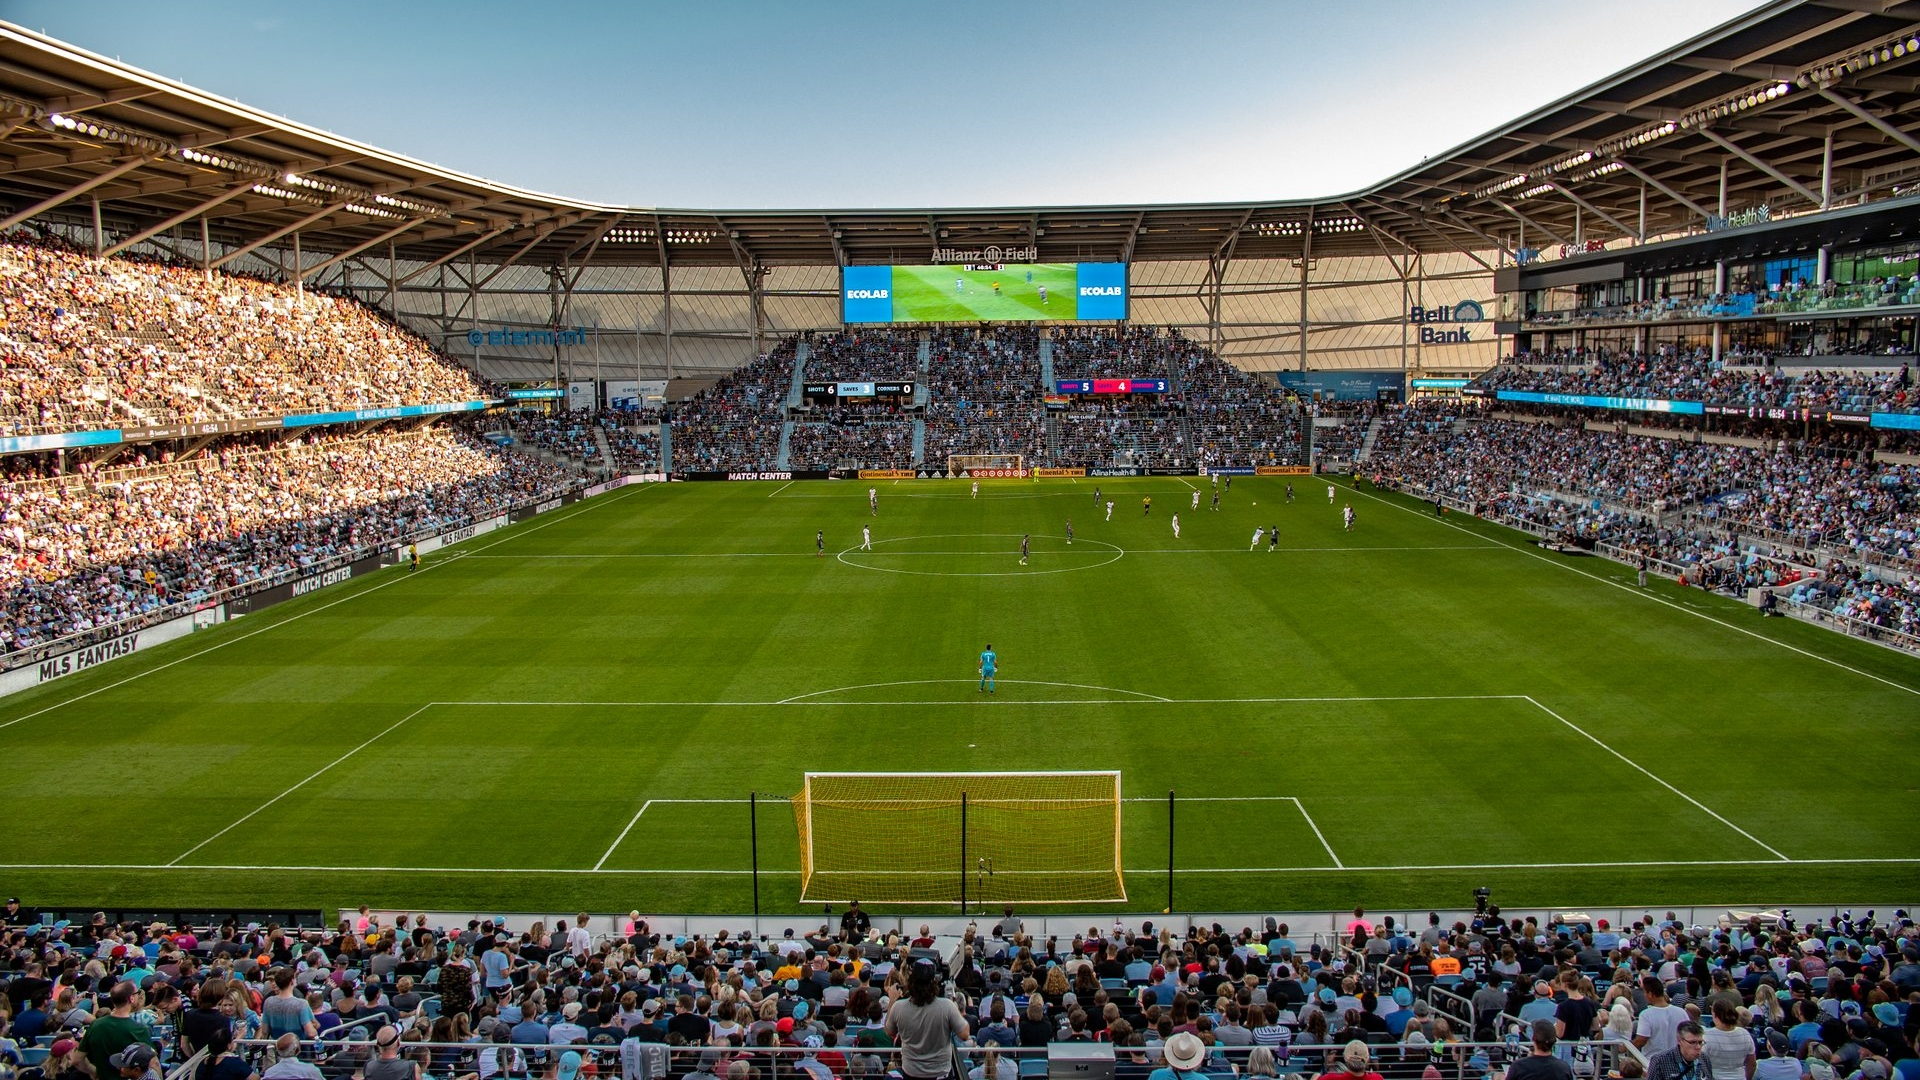 MN United FC of the MLS played in the new Allianz Field in Saint Paul in 2019.